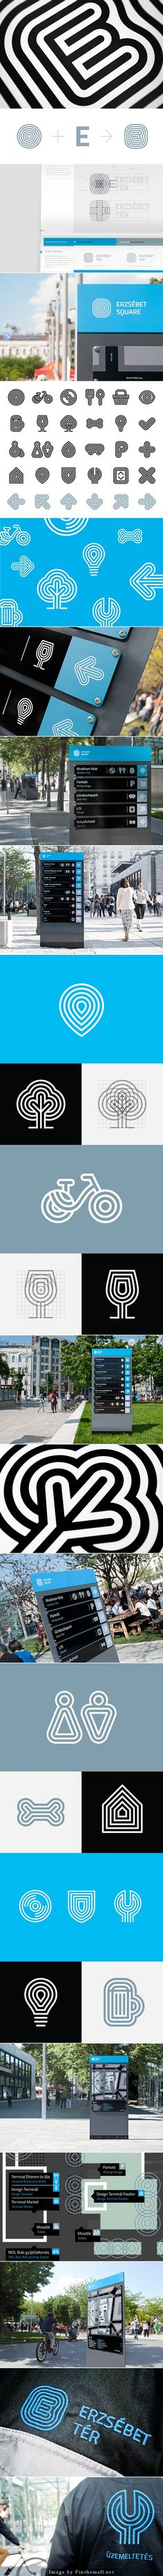 ERZSÉBET SQUARE IDENTITY   Identity design and wayfinding system for Erzsébet Square, one of the most attractive touristic and recreational zones of Budapest's inner city.